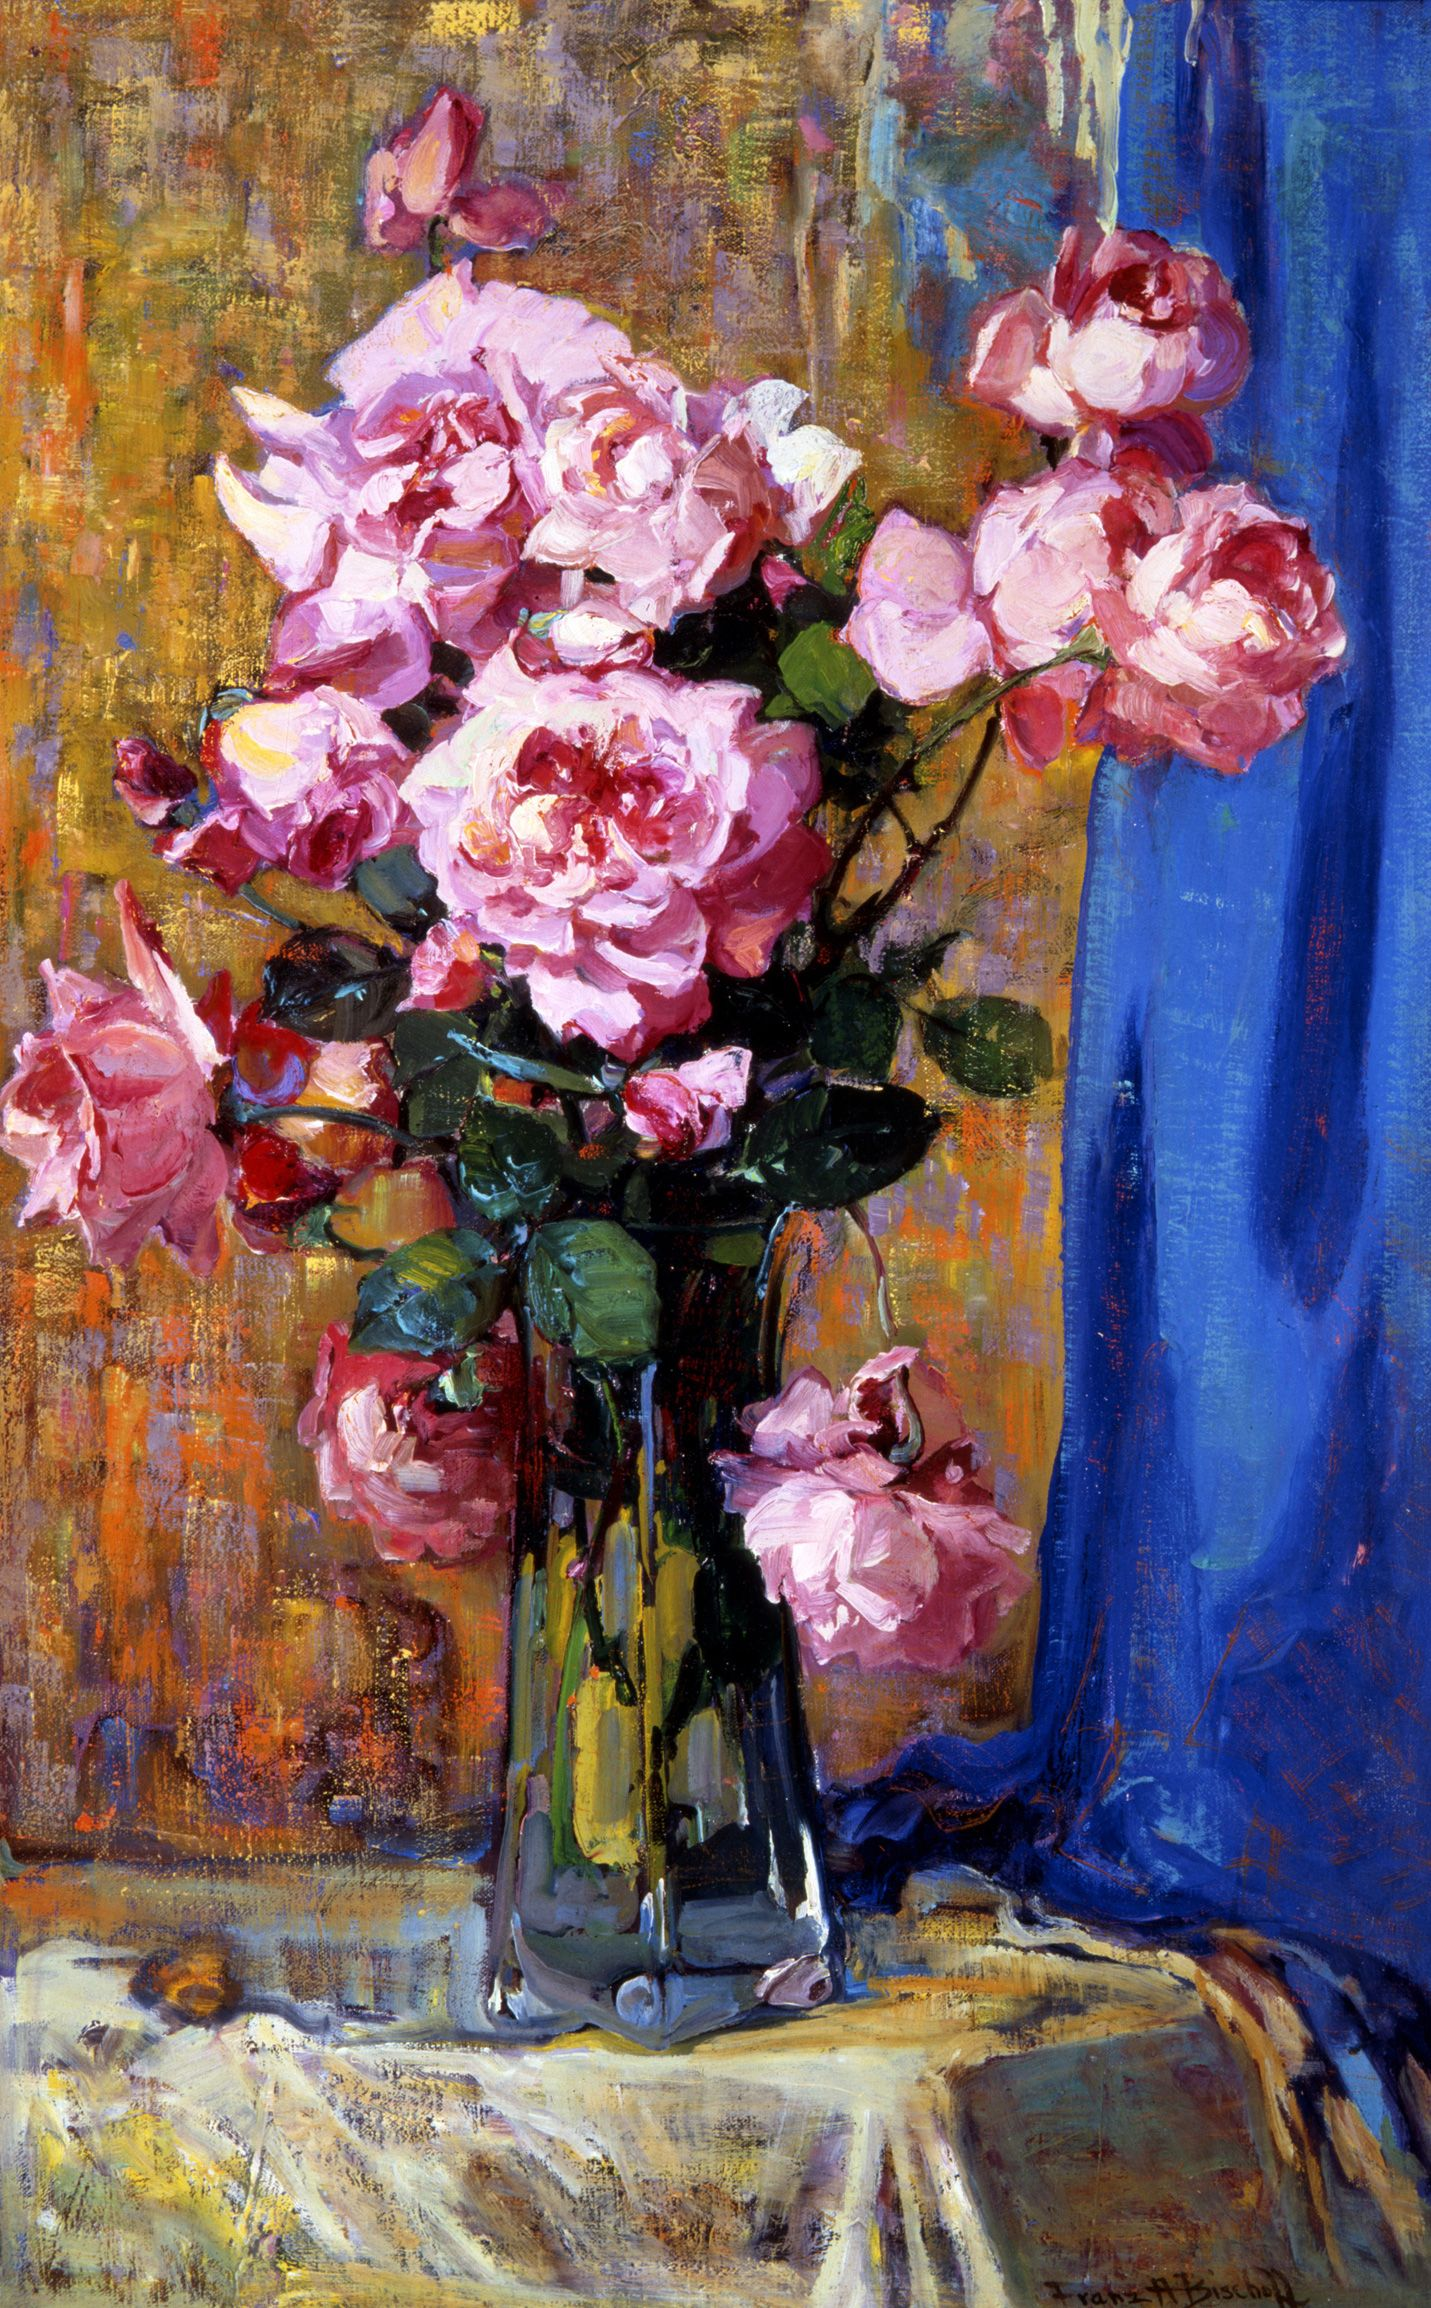 Roses in a tall glass vase by franz bischoff 1912 all roses in a tall glass vase franz bischoff 1912 impressionism american more paintings by franz bischoff are on my board art of flowers franz reviewsmspy